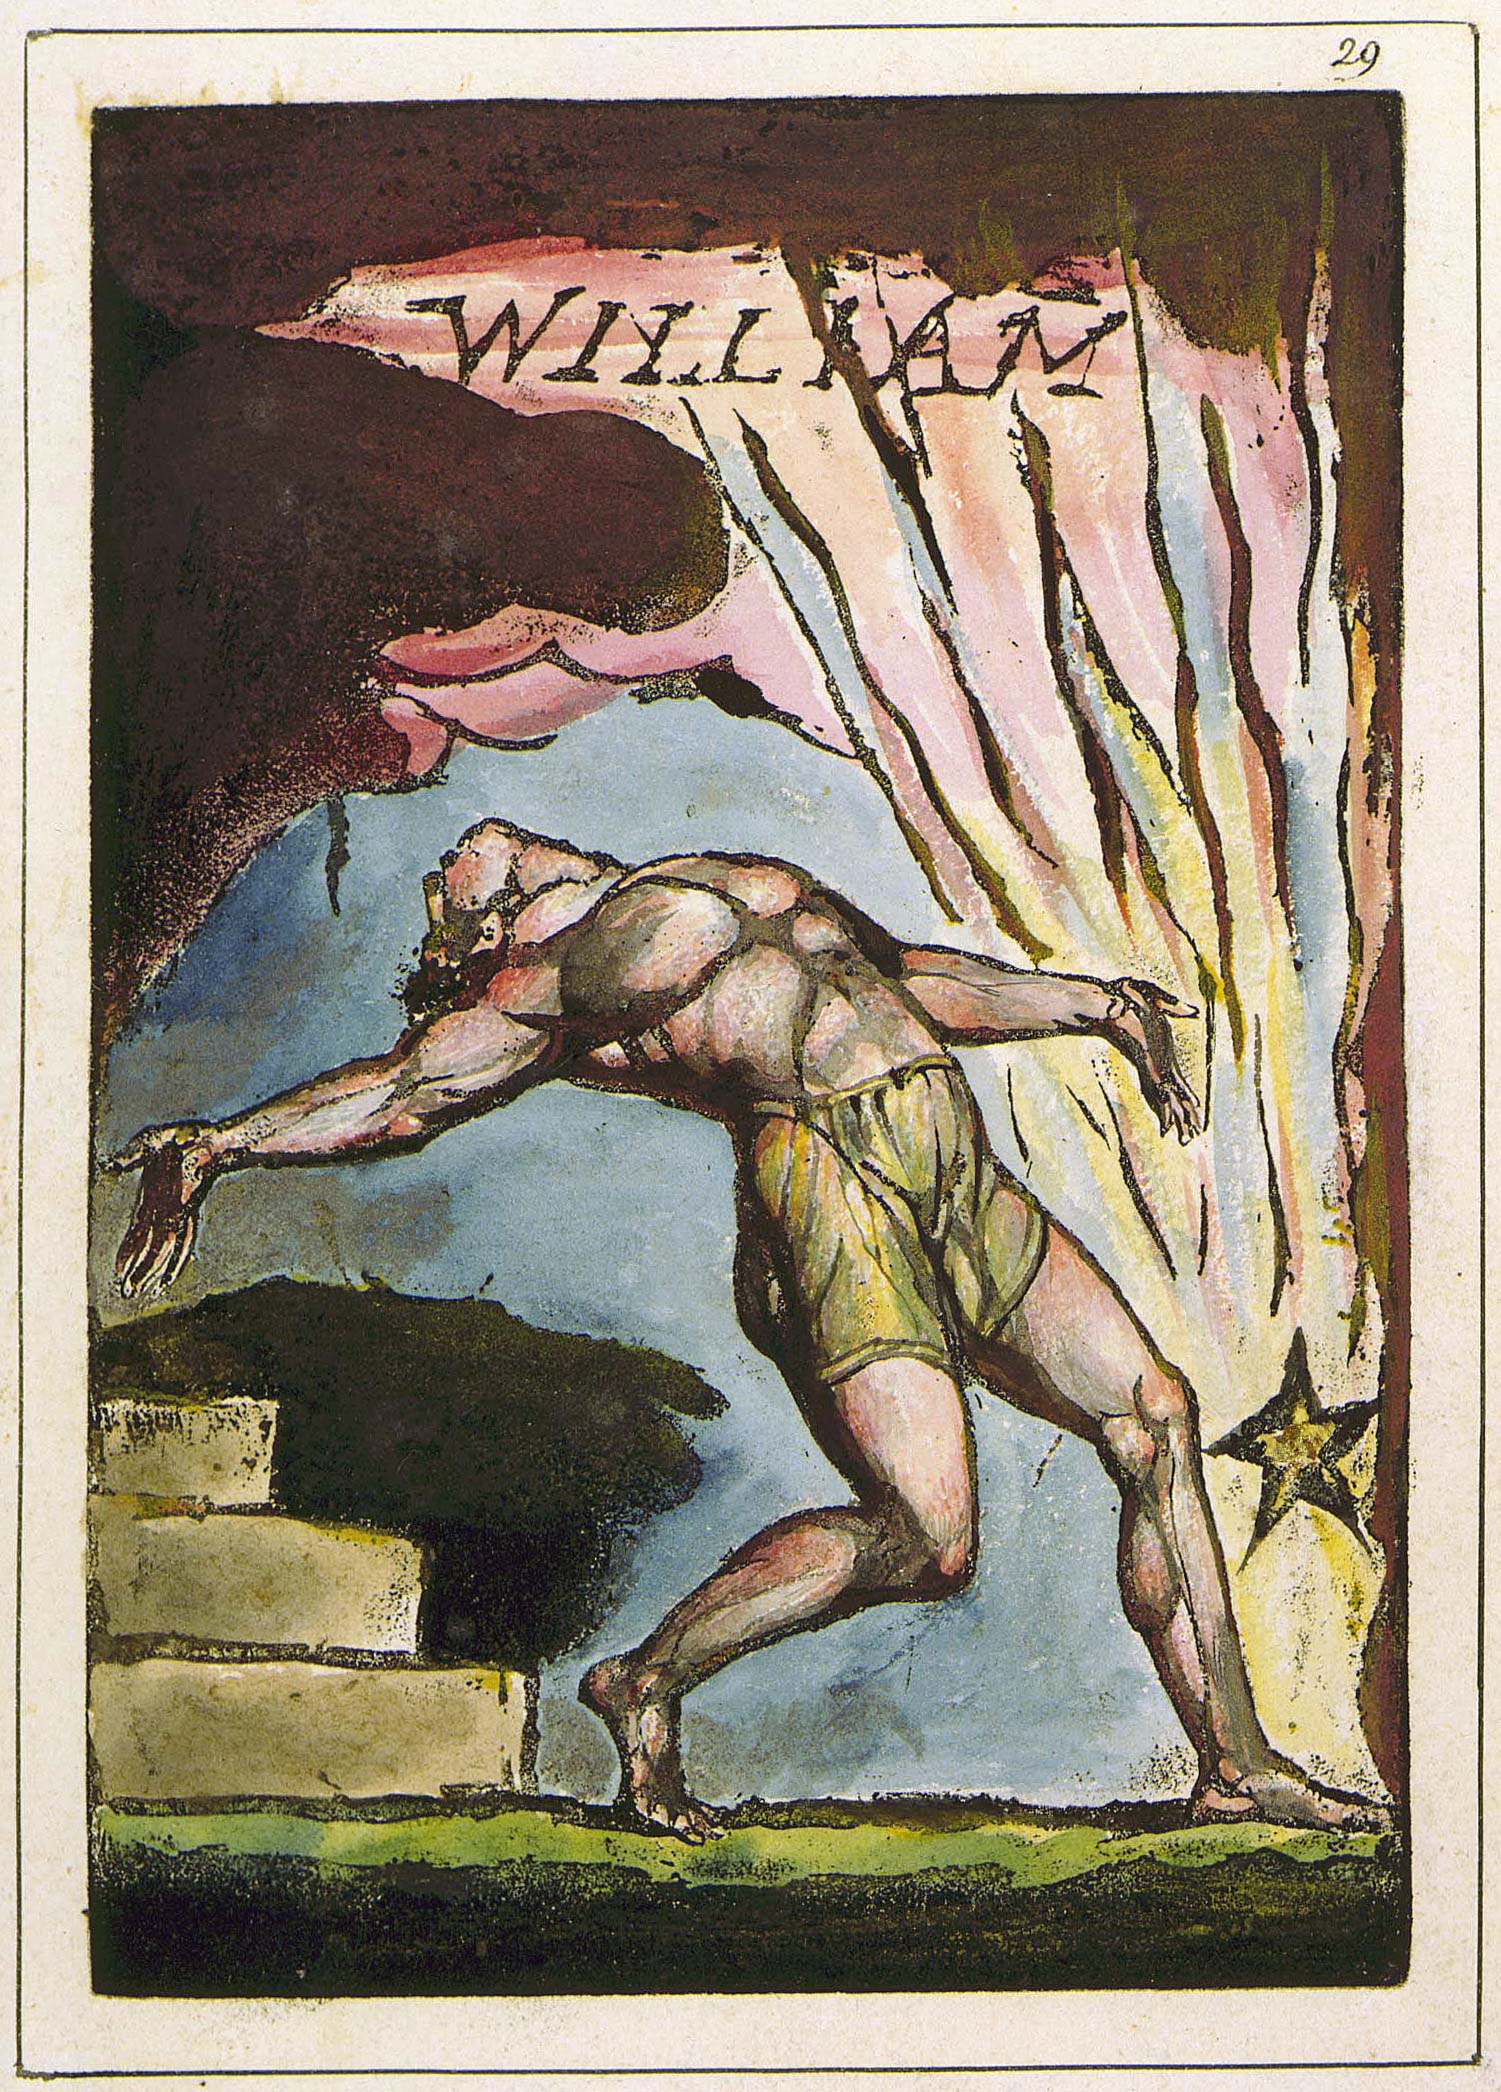 william blakes visions essay Free essay: william blake william blake, innocence vs experience essay blake began having visions that he claimed were the source of his inspiration.